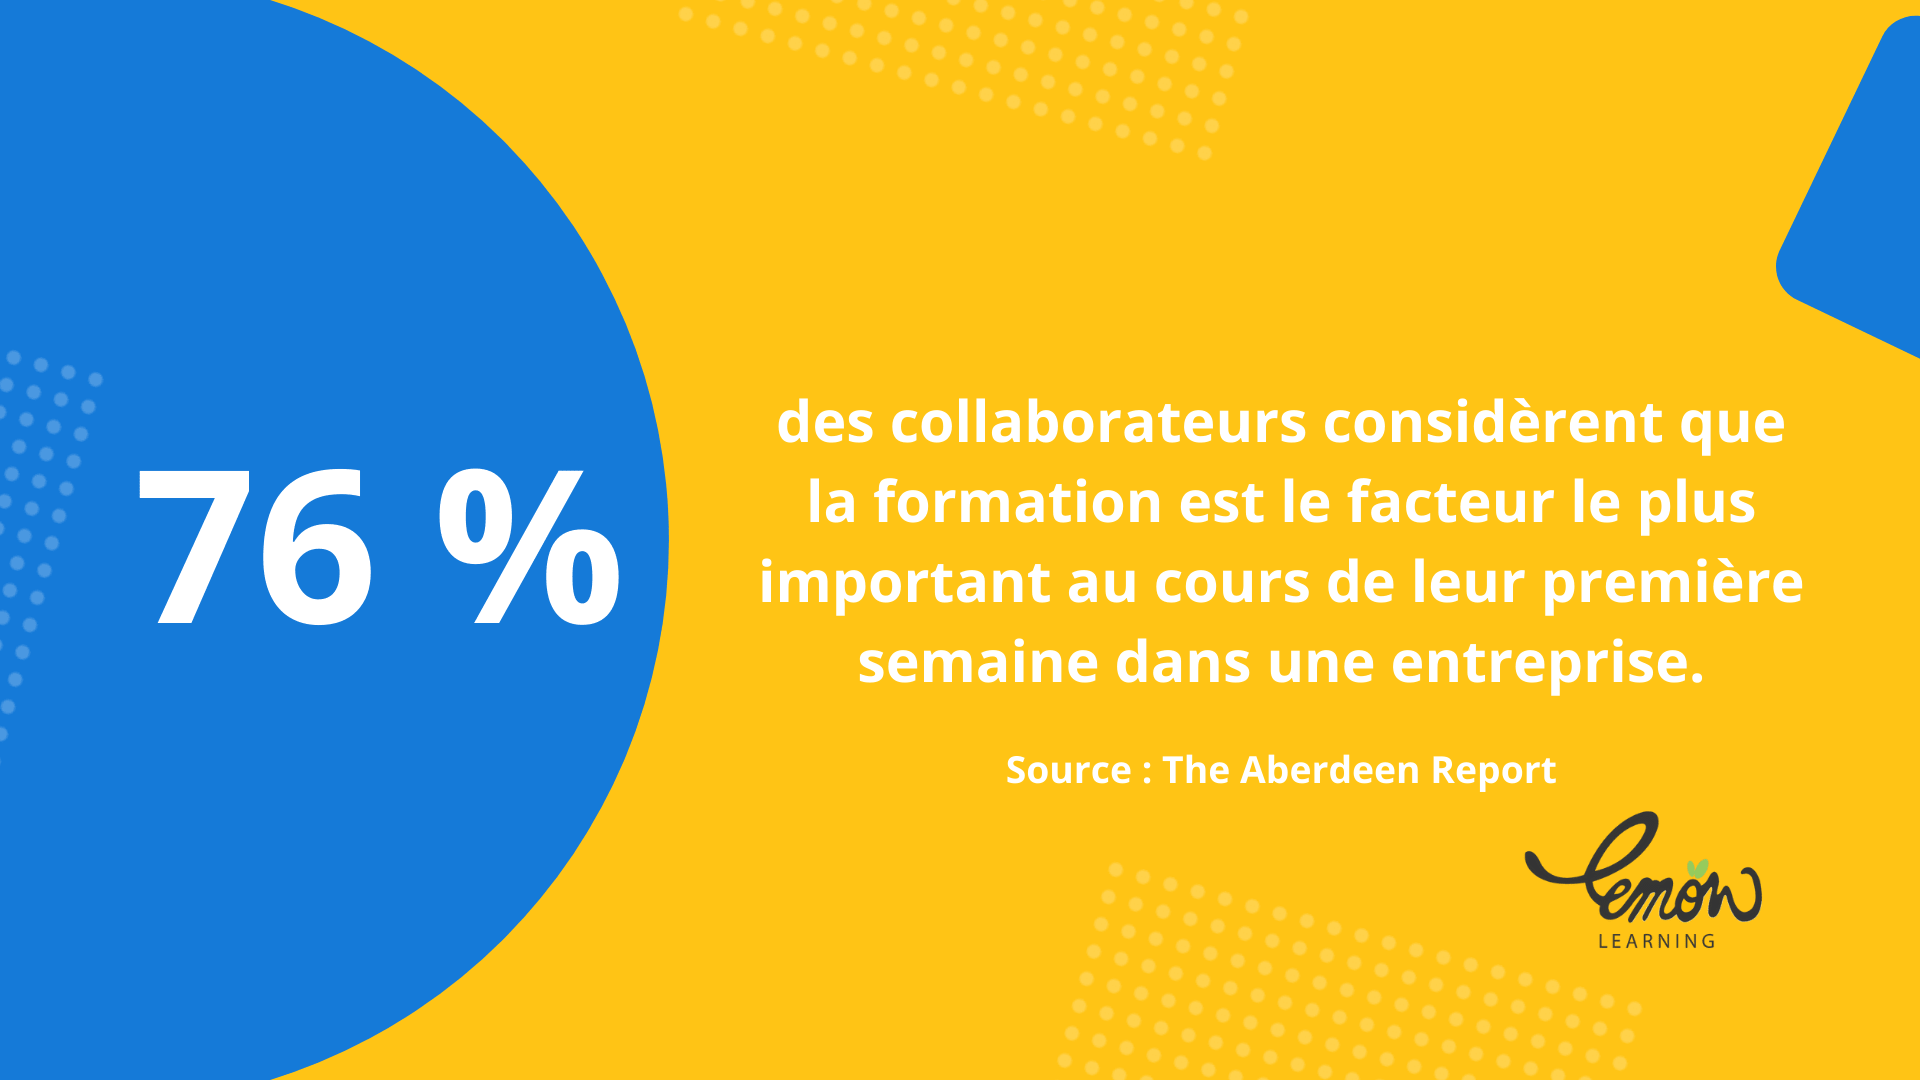 Formation importance collaborateurs